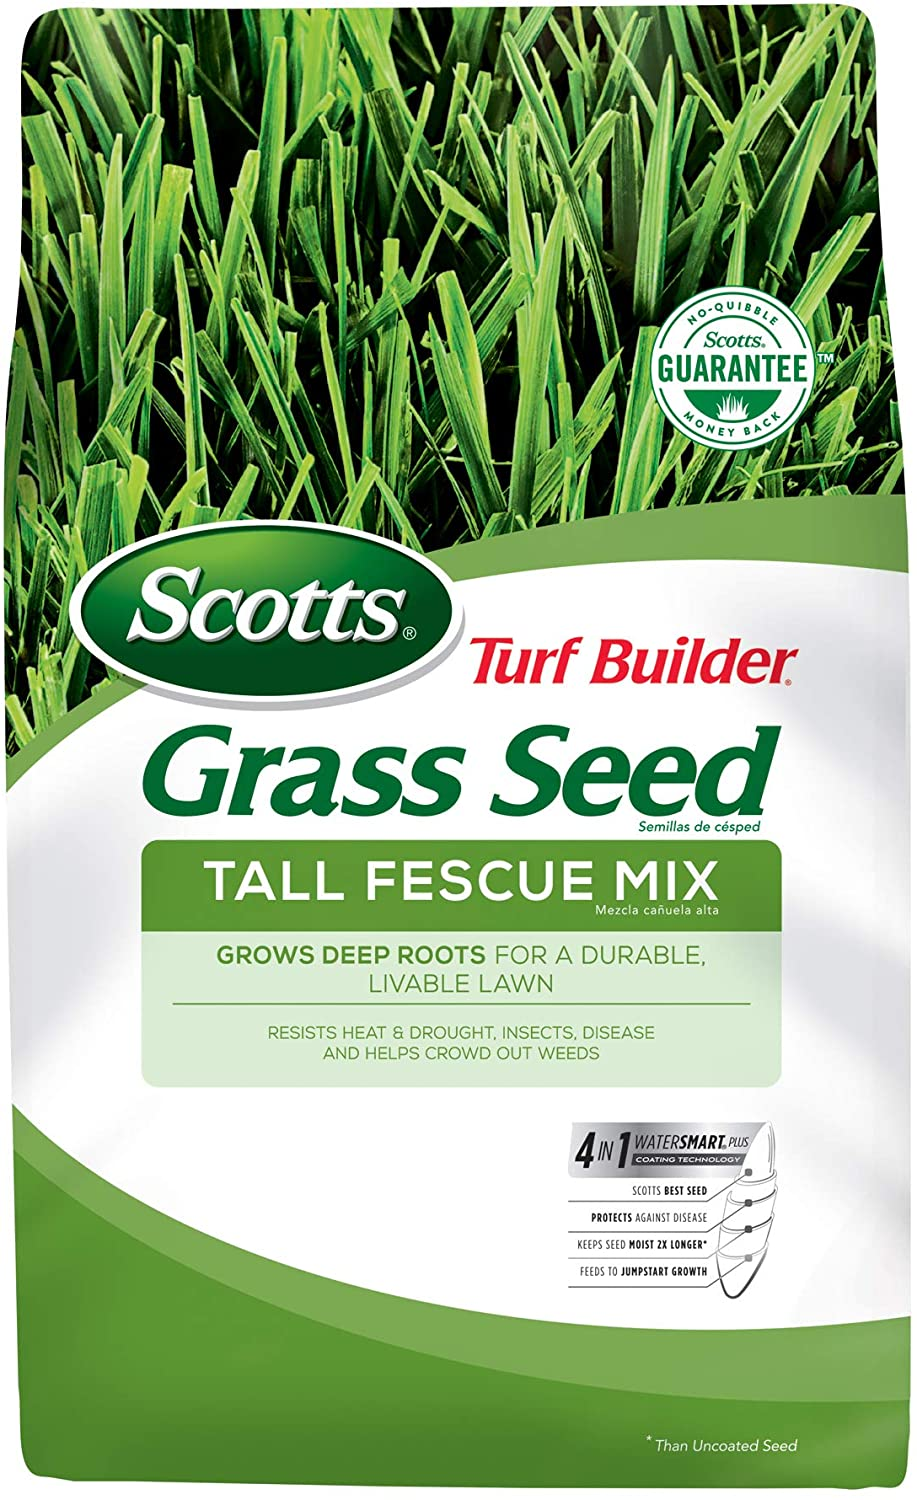 Scotts Turf Builder Grass Seed Tall Fescue Mix, 20 lb. - Full Sun and Partial Shade - Resists Heat and Drought, Insects, Disease and Helps Crowd Out Weeds - Seeds up to 5,000 sq. ft.